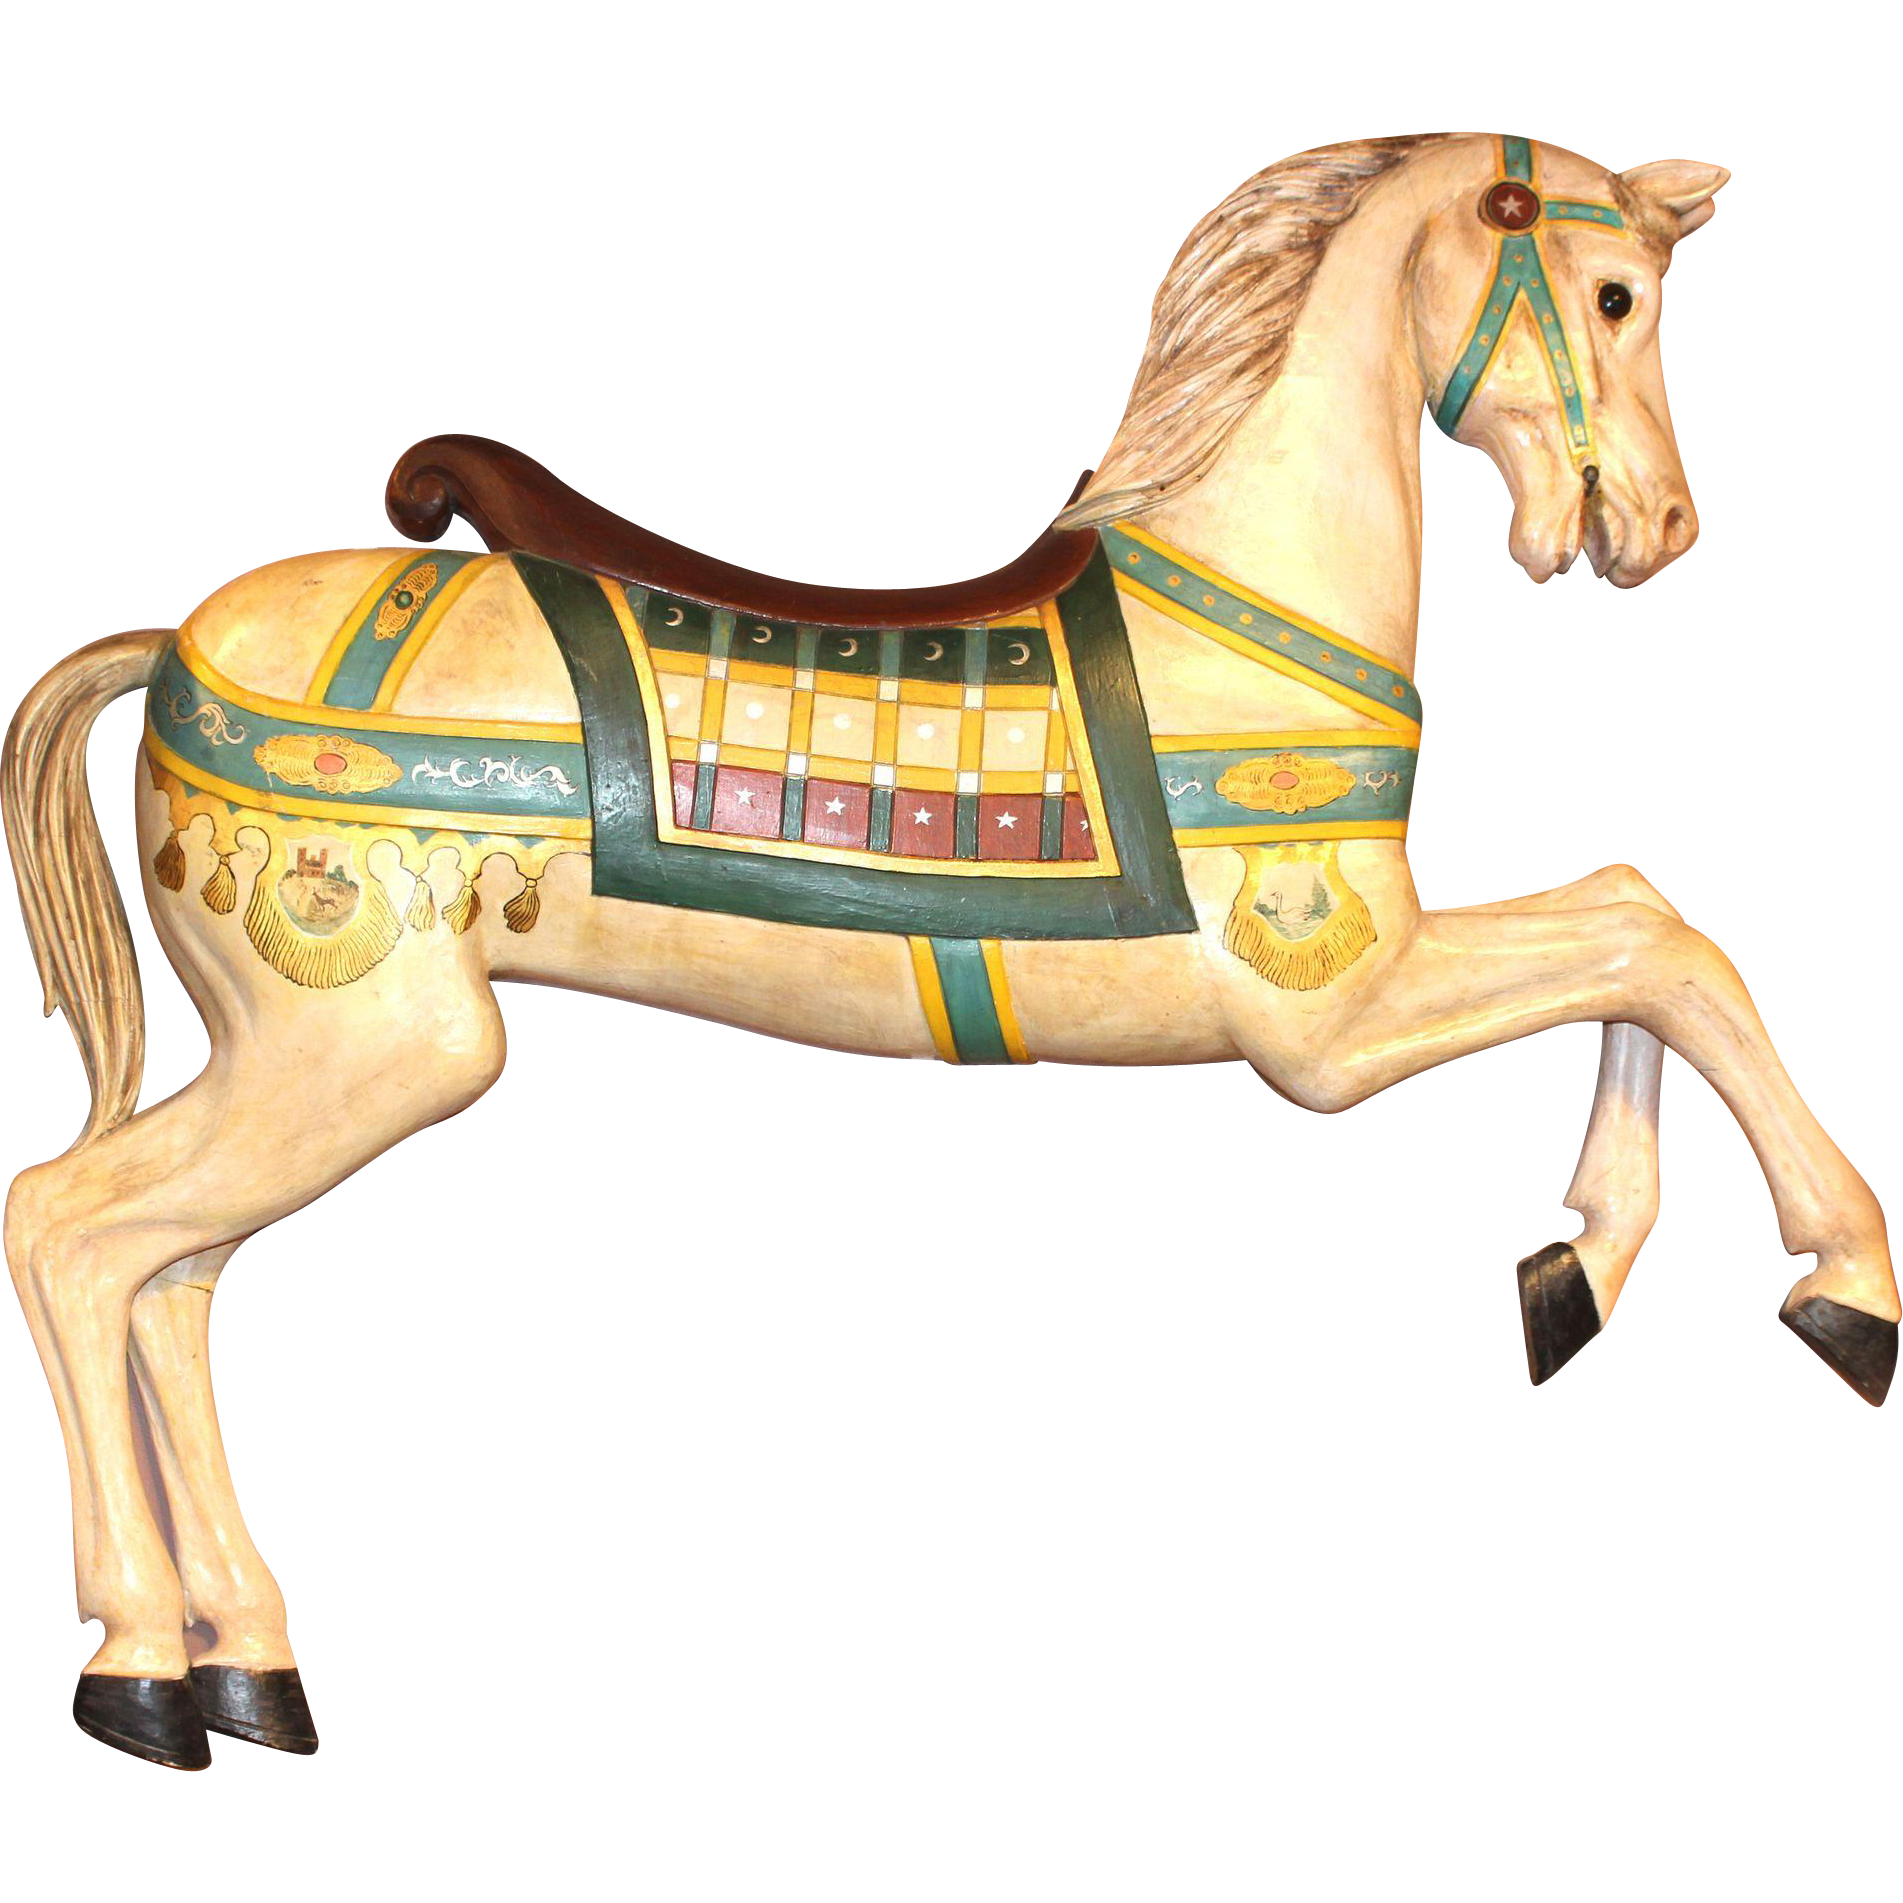 clip art royalty free download Clipart carousel horse. Polychrome decorated prancer frederick.